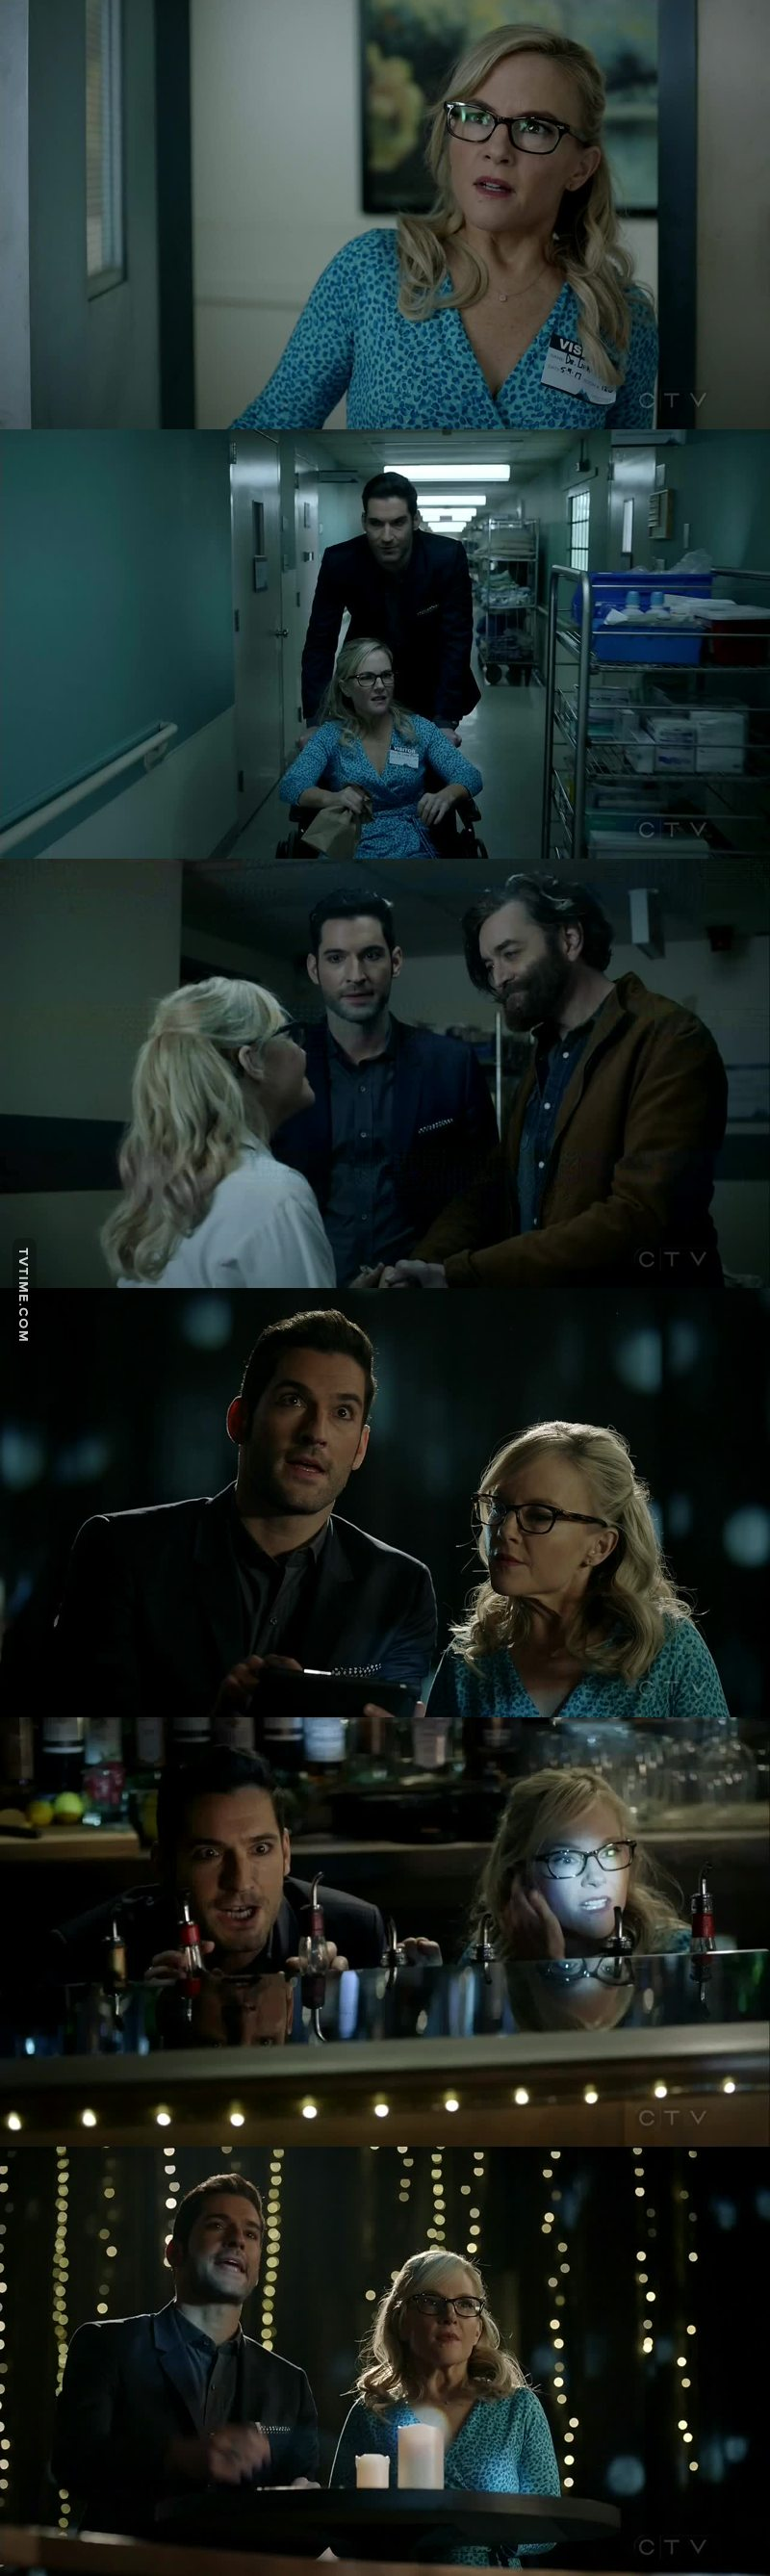 I love Linda and her relationship with Lucifer!